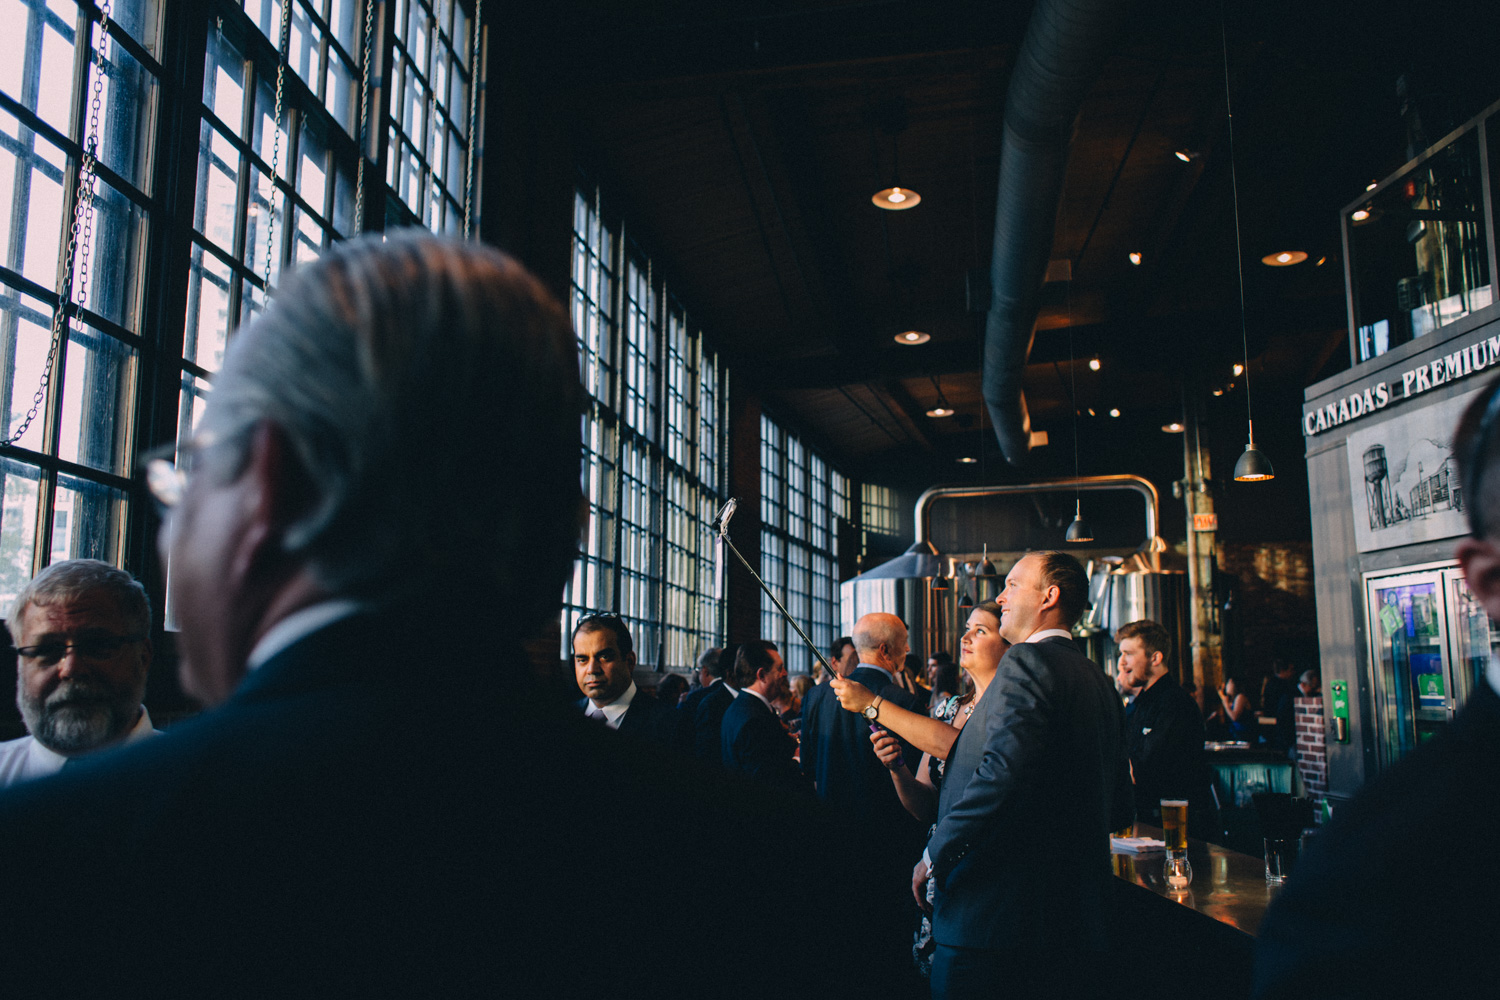 steam-whistle-brewery-wedding-photos-toronto-wedding-photography-by-sam-wong-of-artanis-collective_01042